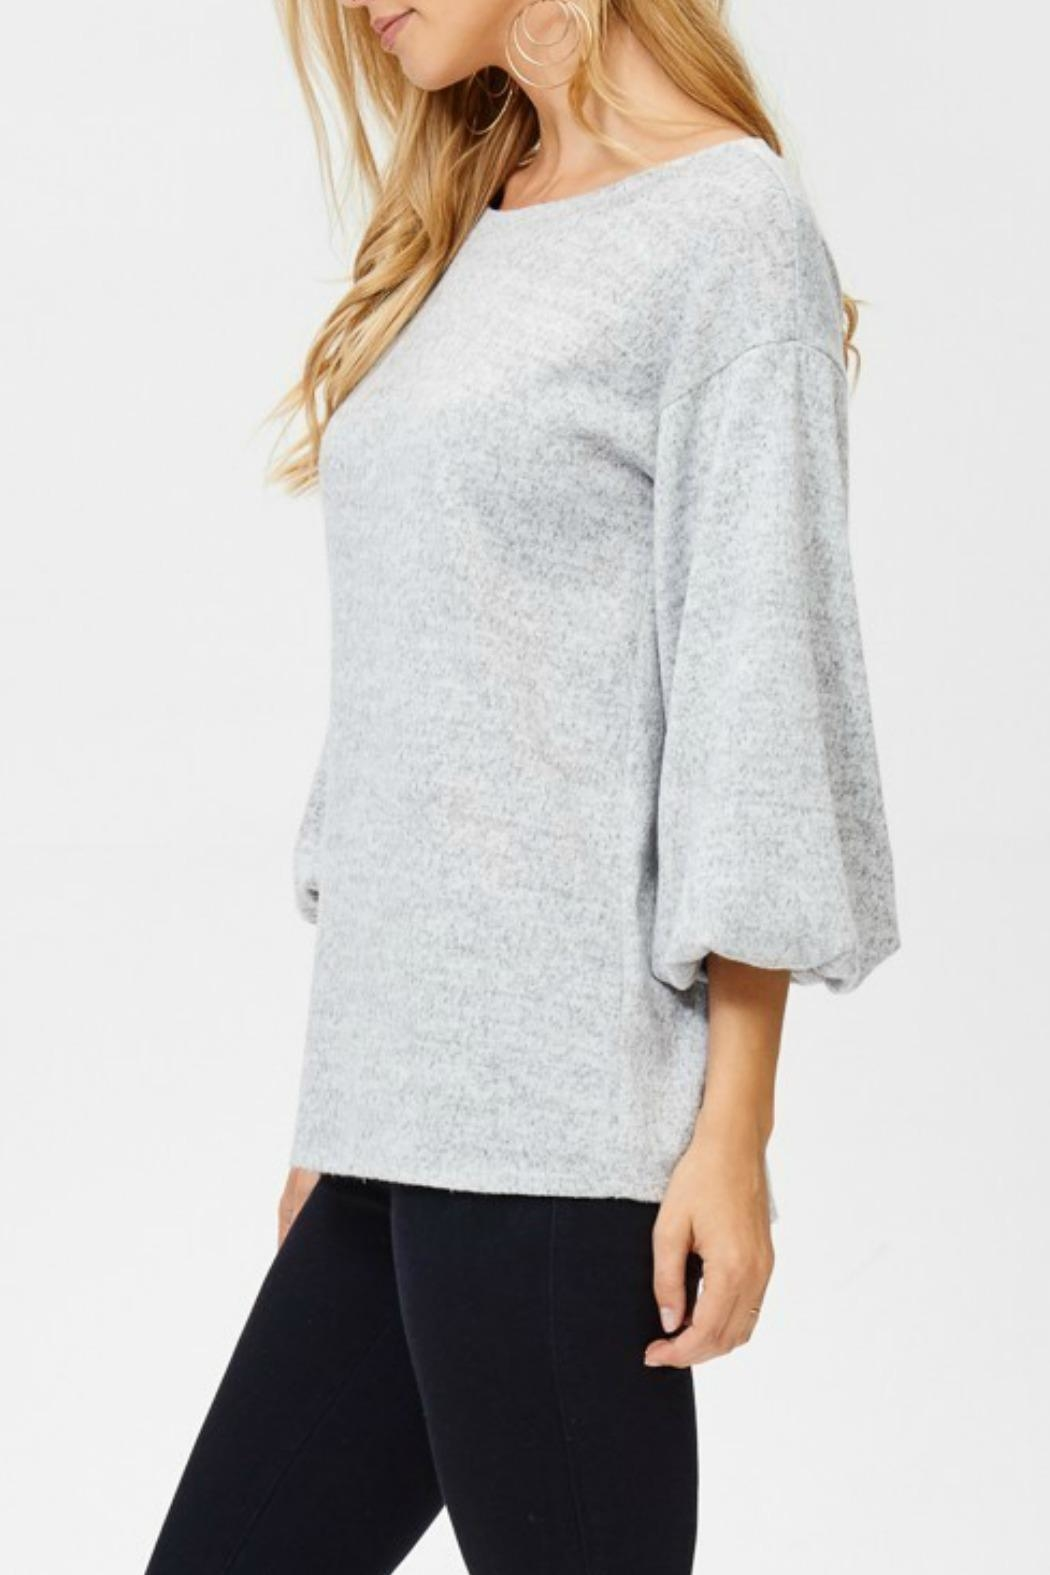 White Birch Heather Gray Sweater - Front Full Image